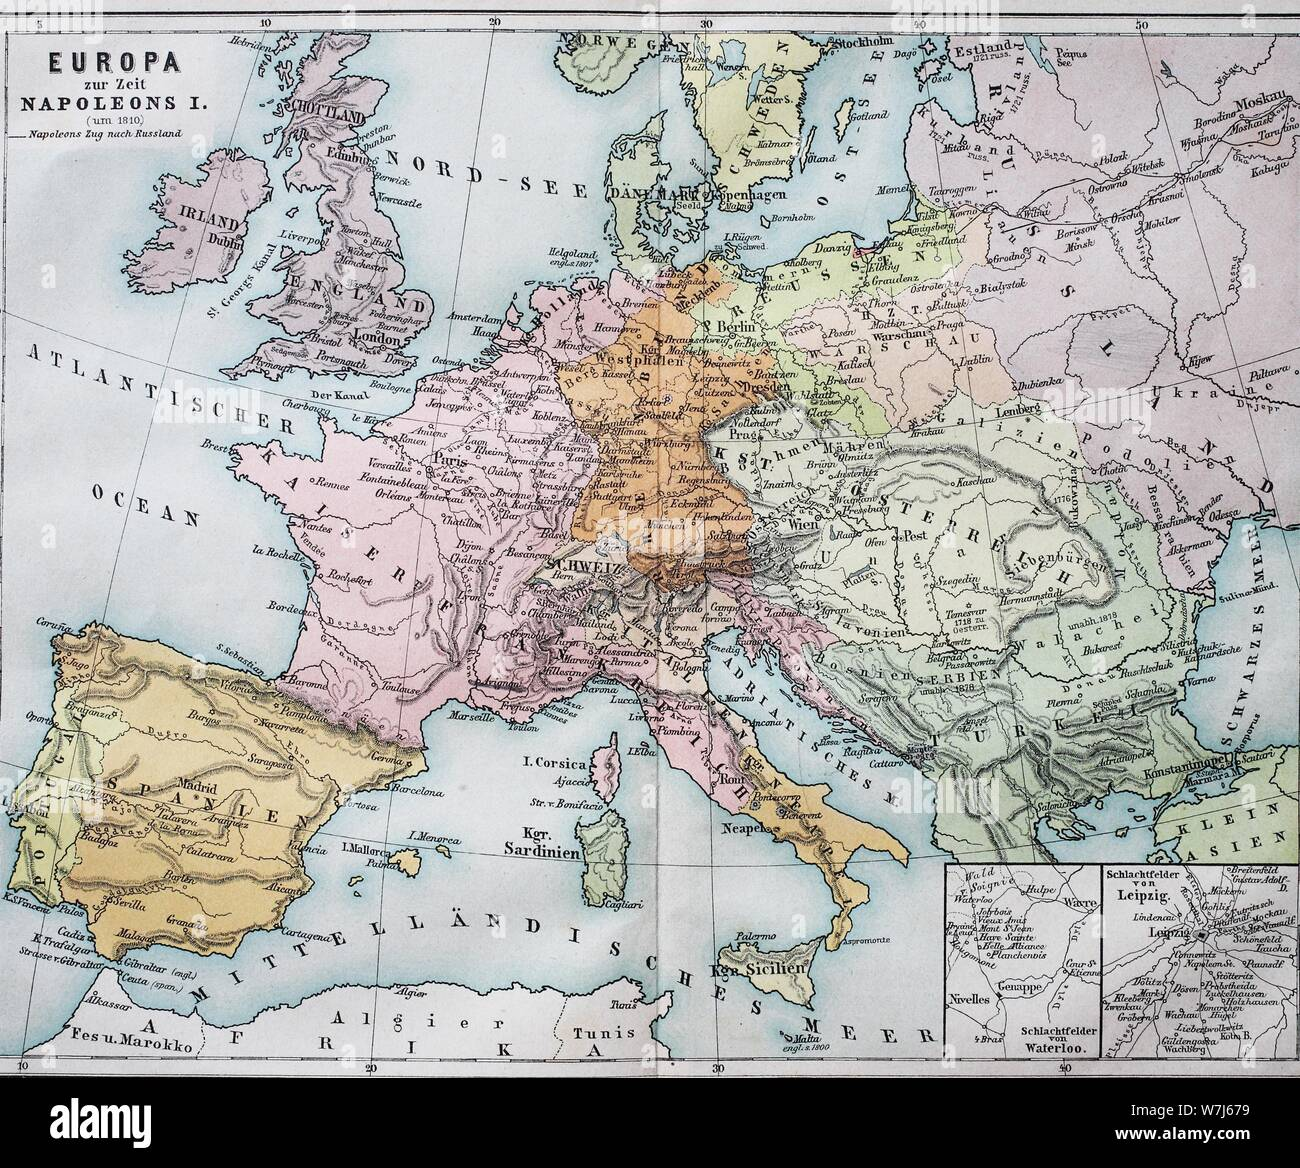 map of europe 1820 Historical map of Europe at the time of Napoleon I, 1820